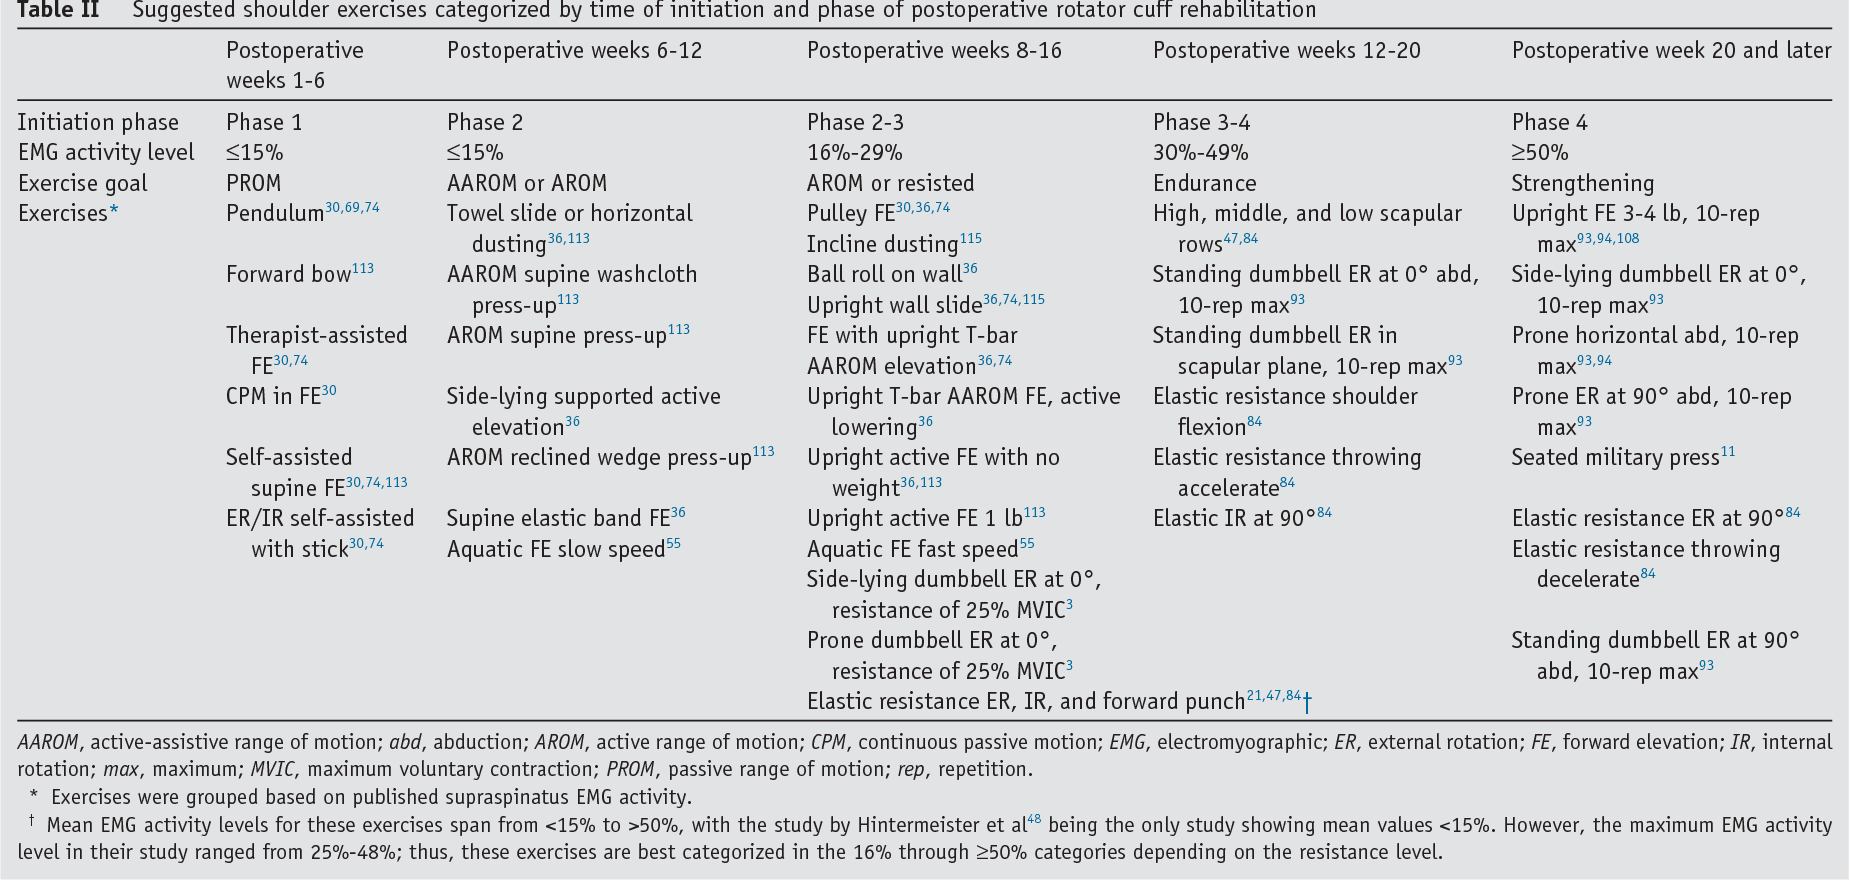 Table II from The American Society of Shoulder and Elbow